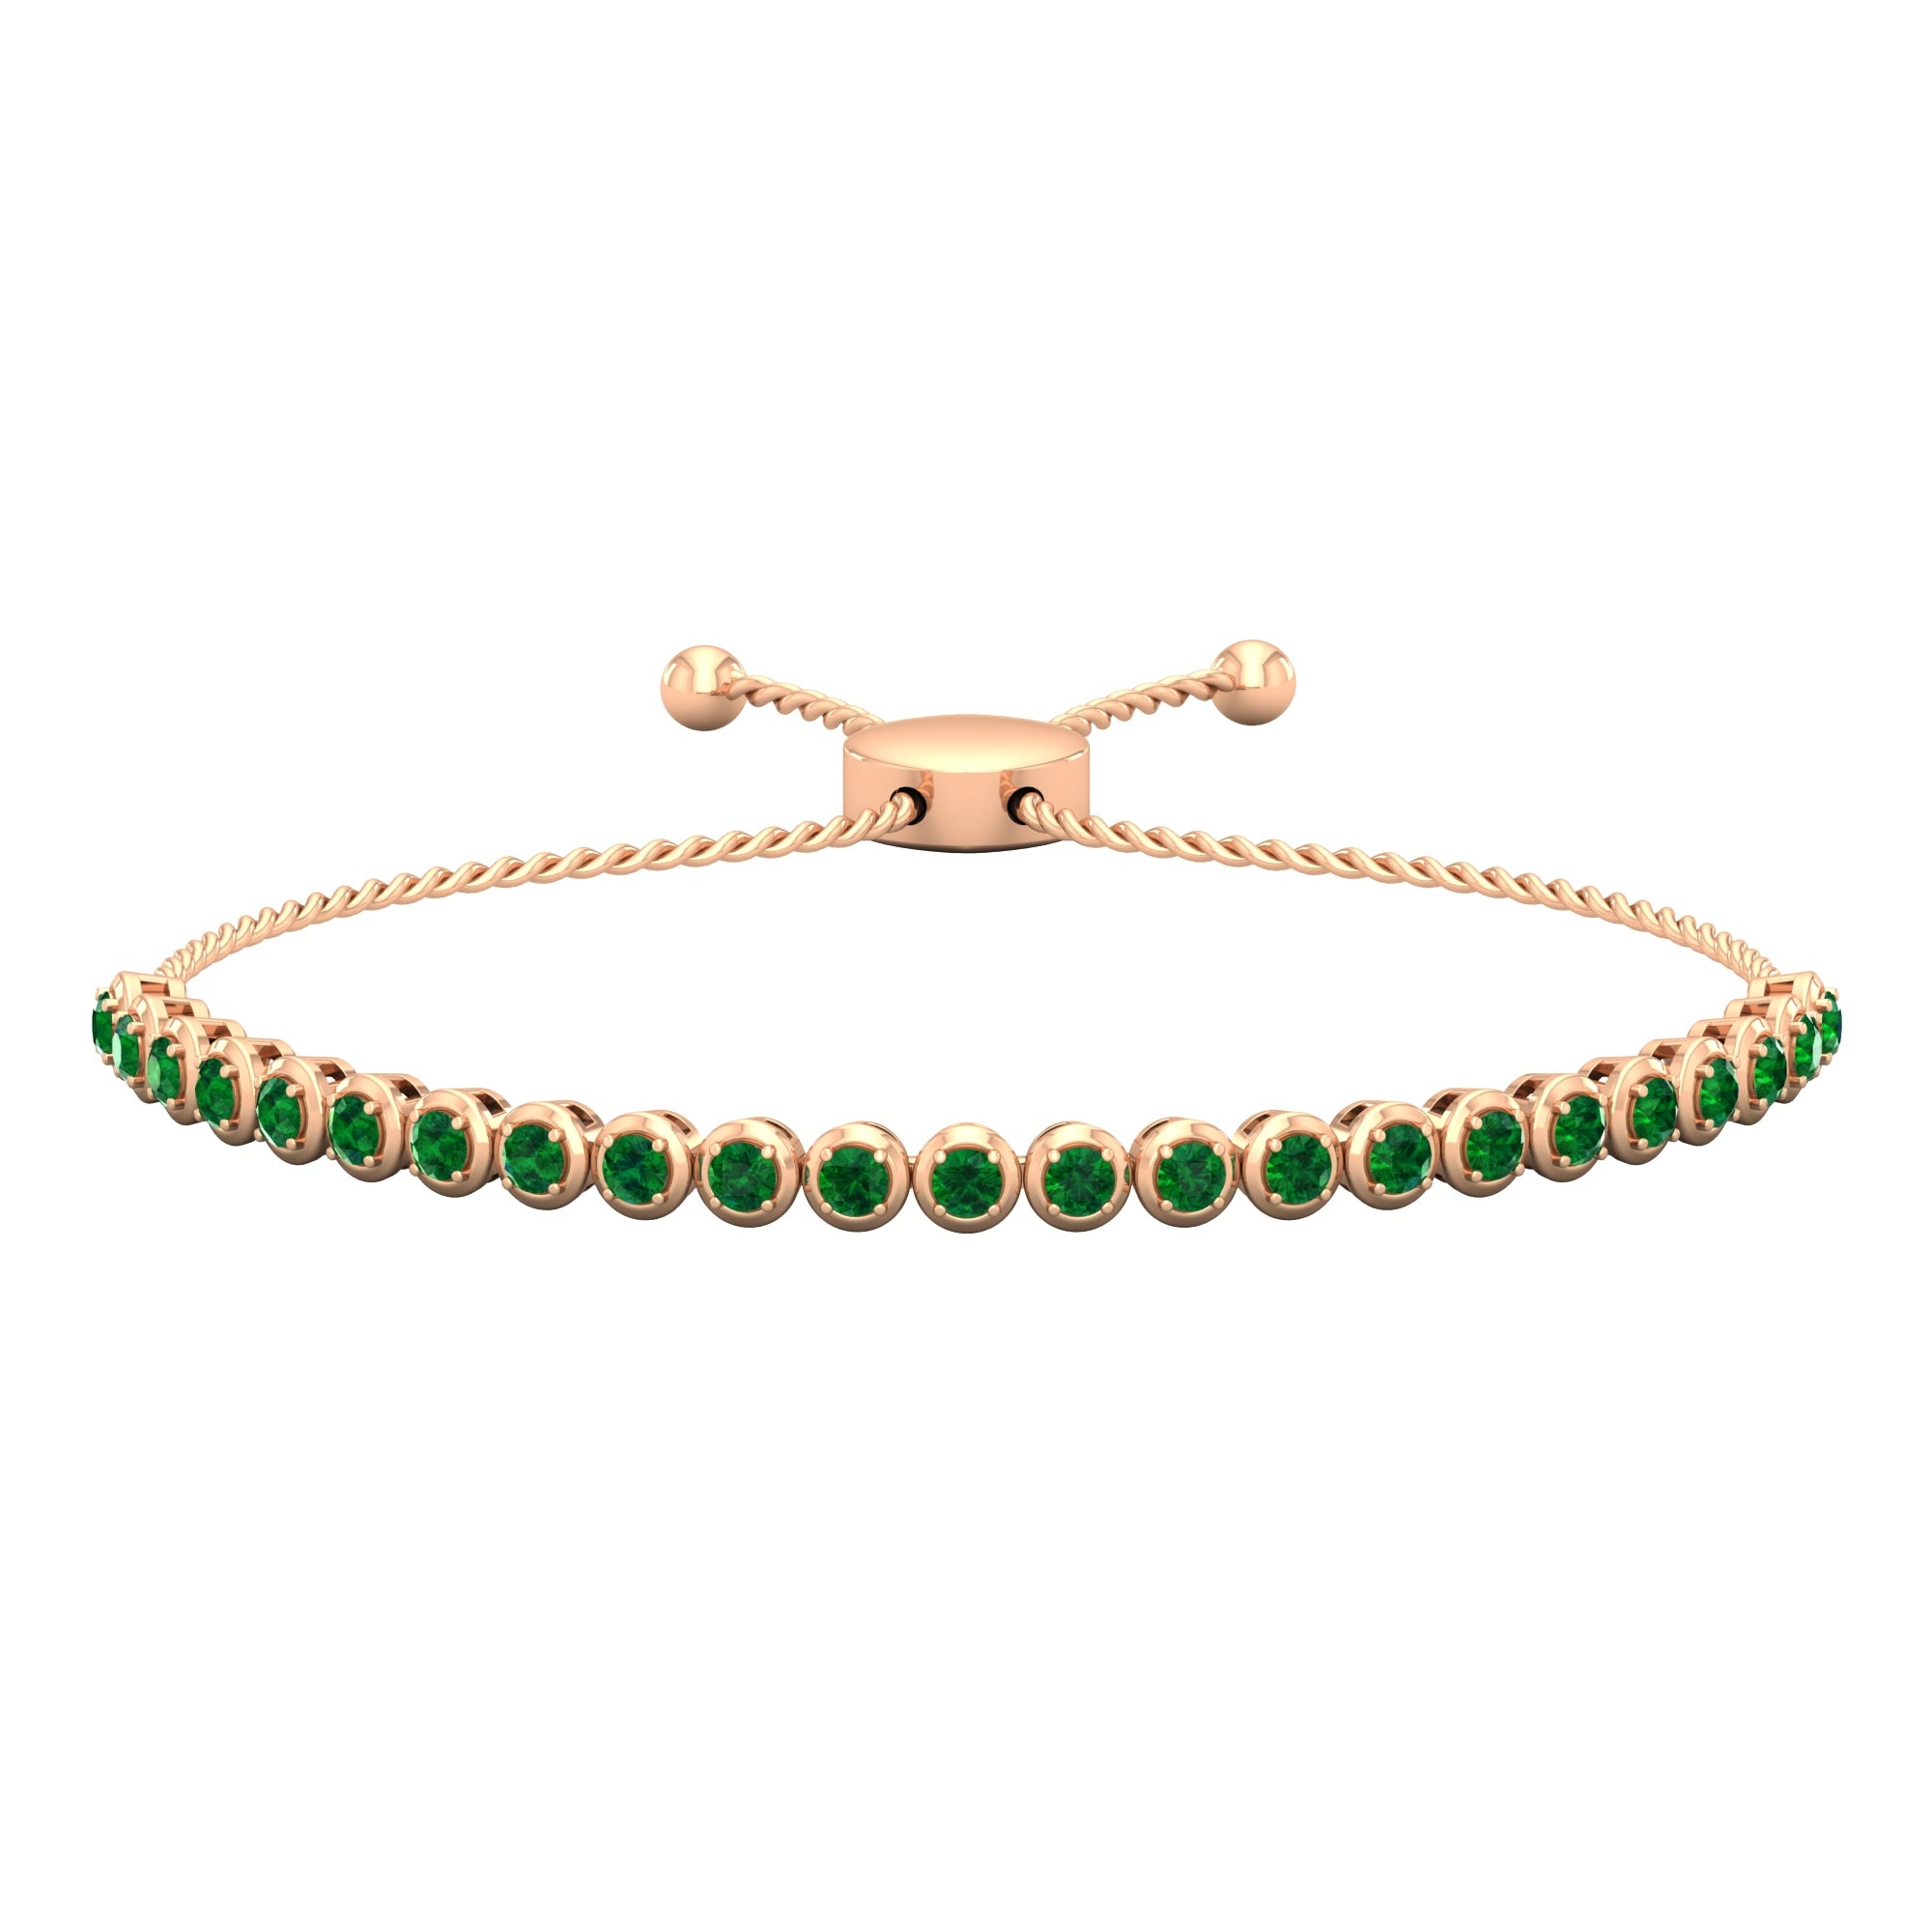 1.50 CT Round Cut Emerald Bolo Bracelet in Prong Setting